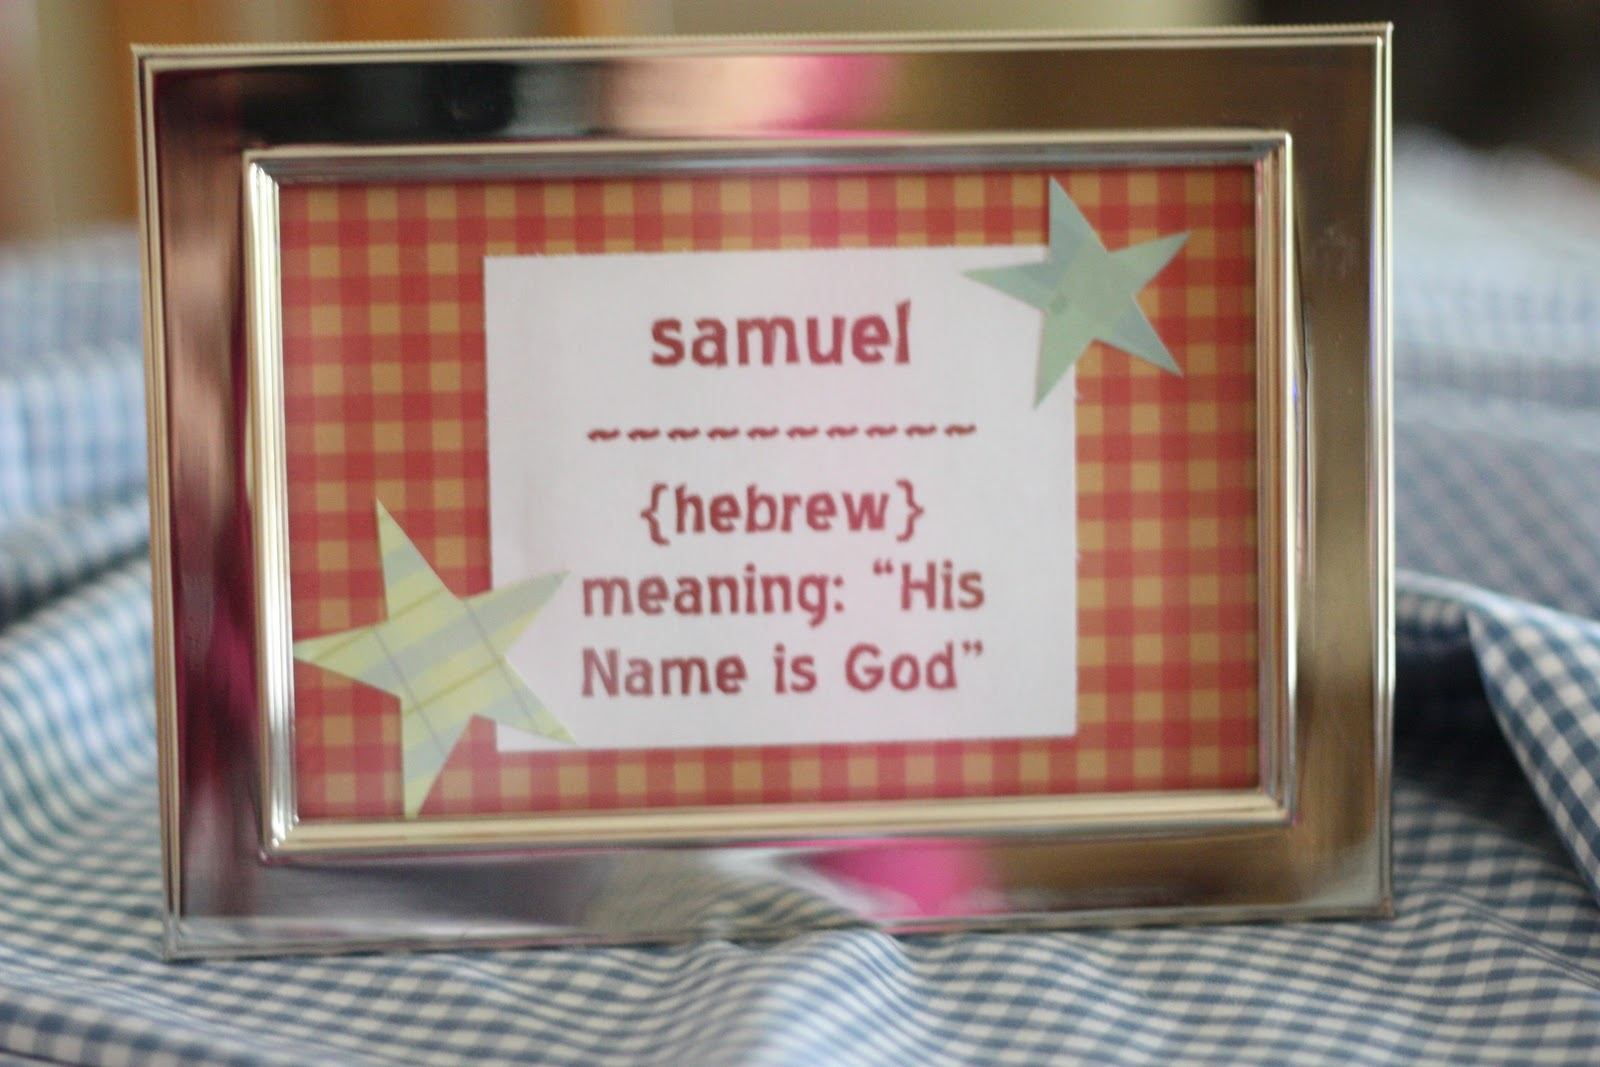 I Love Knowing The Meaning Of Names! I Used BabyNamesWorld.com To Look Up  The Meaning Of U201cSamuelu201d And Then Typed It Out On A Word Document.